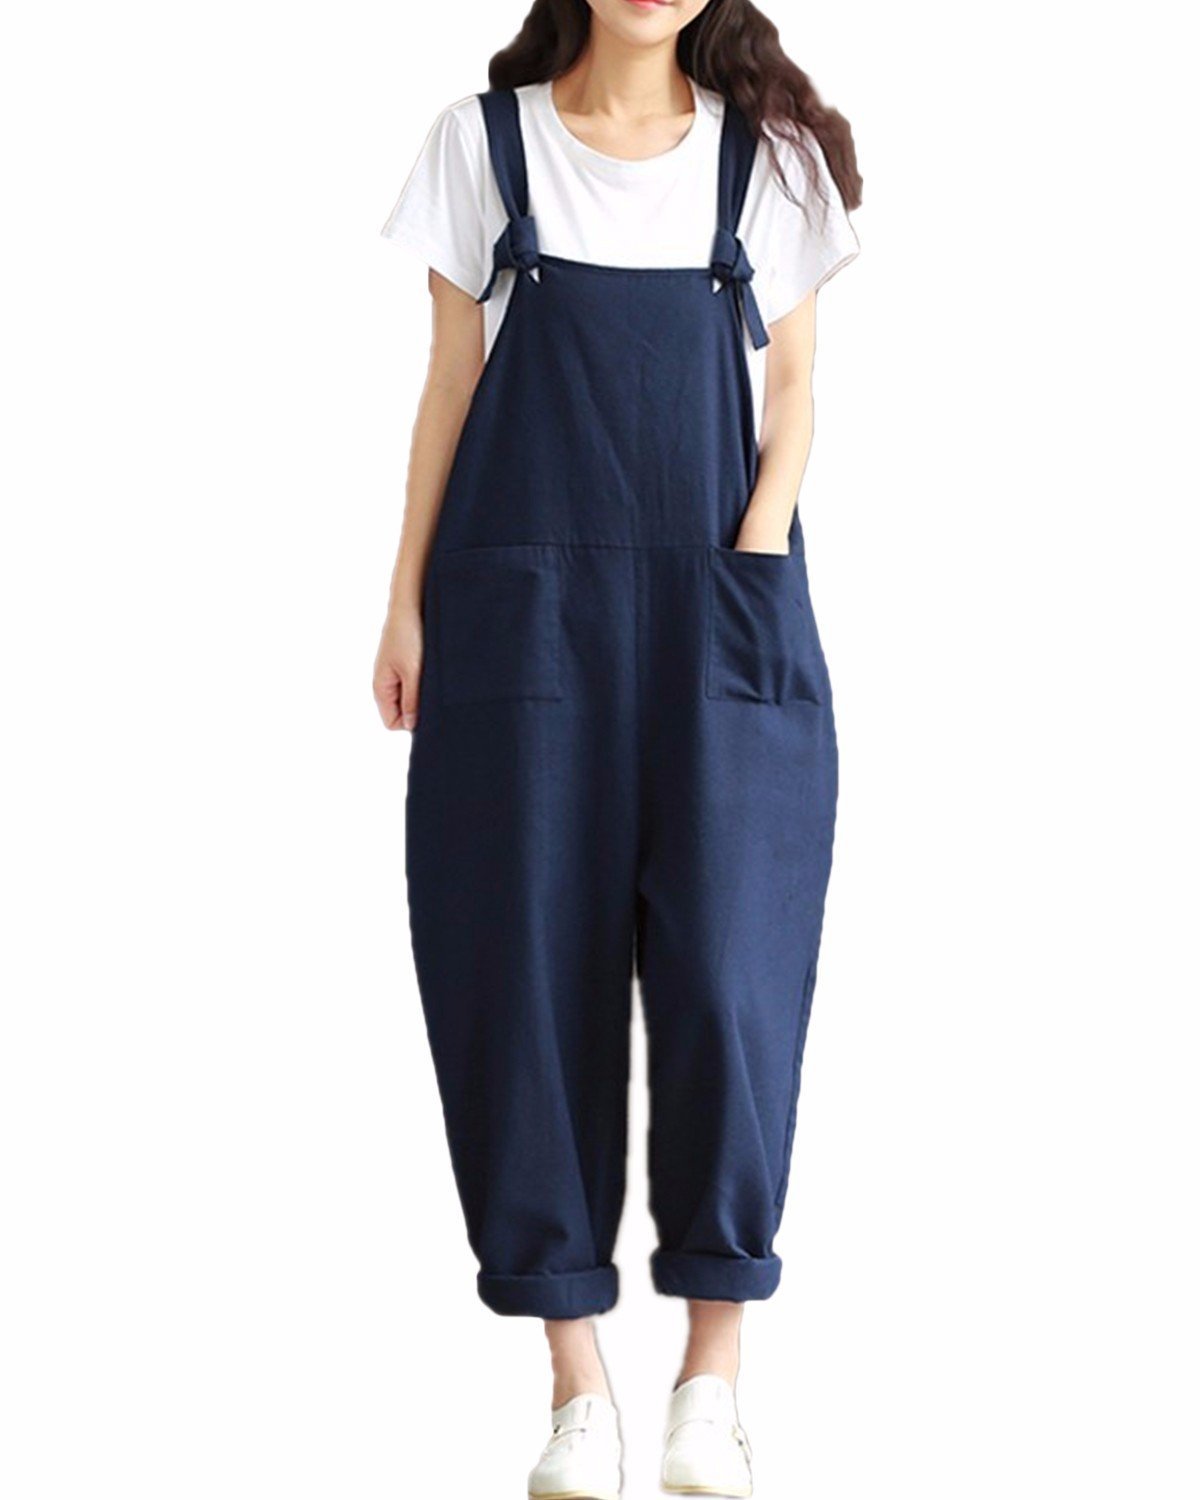 ZANZEA Women's Retro Loose Casual Baggy Sleeveless Overall Long Jumpsuit Playsuit Trousers Pants Dungarees ZANZEAATHENAWIN12336